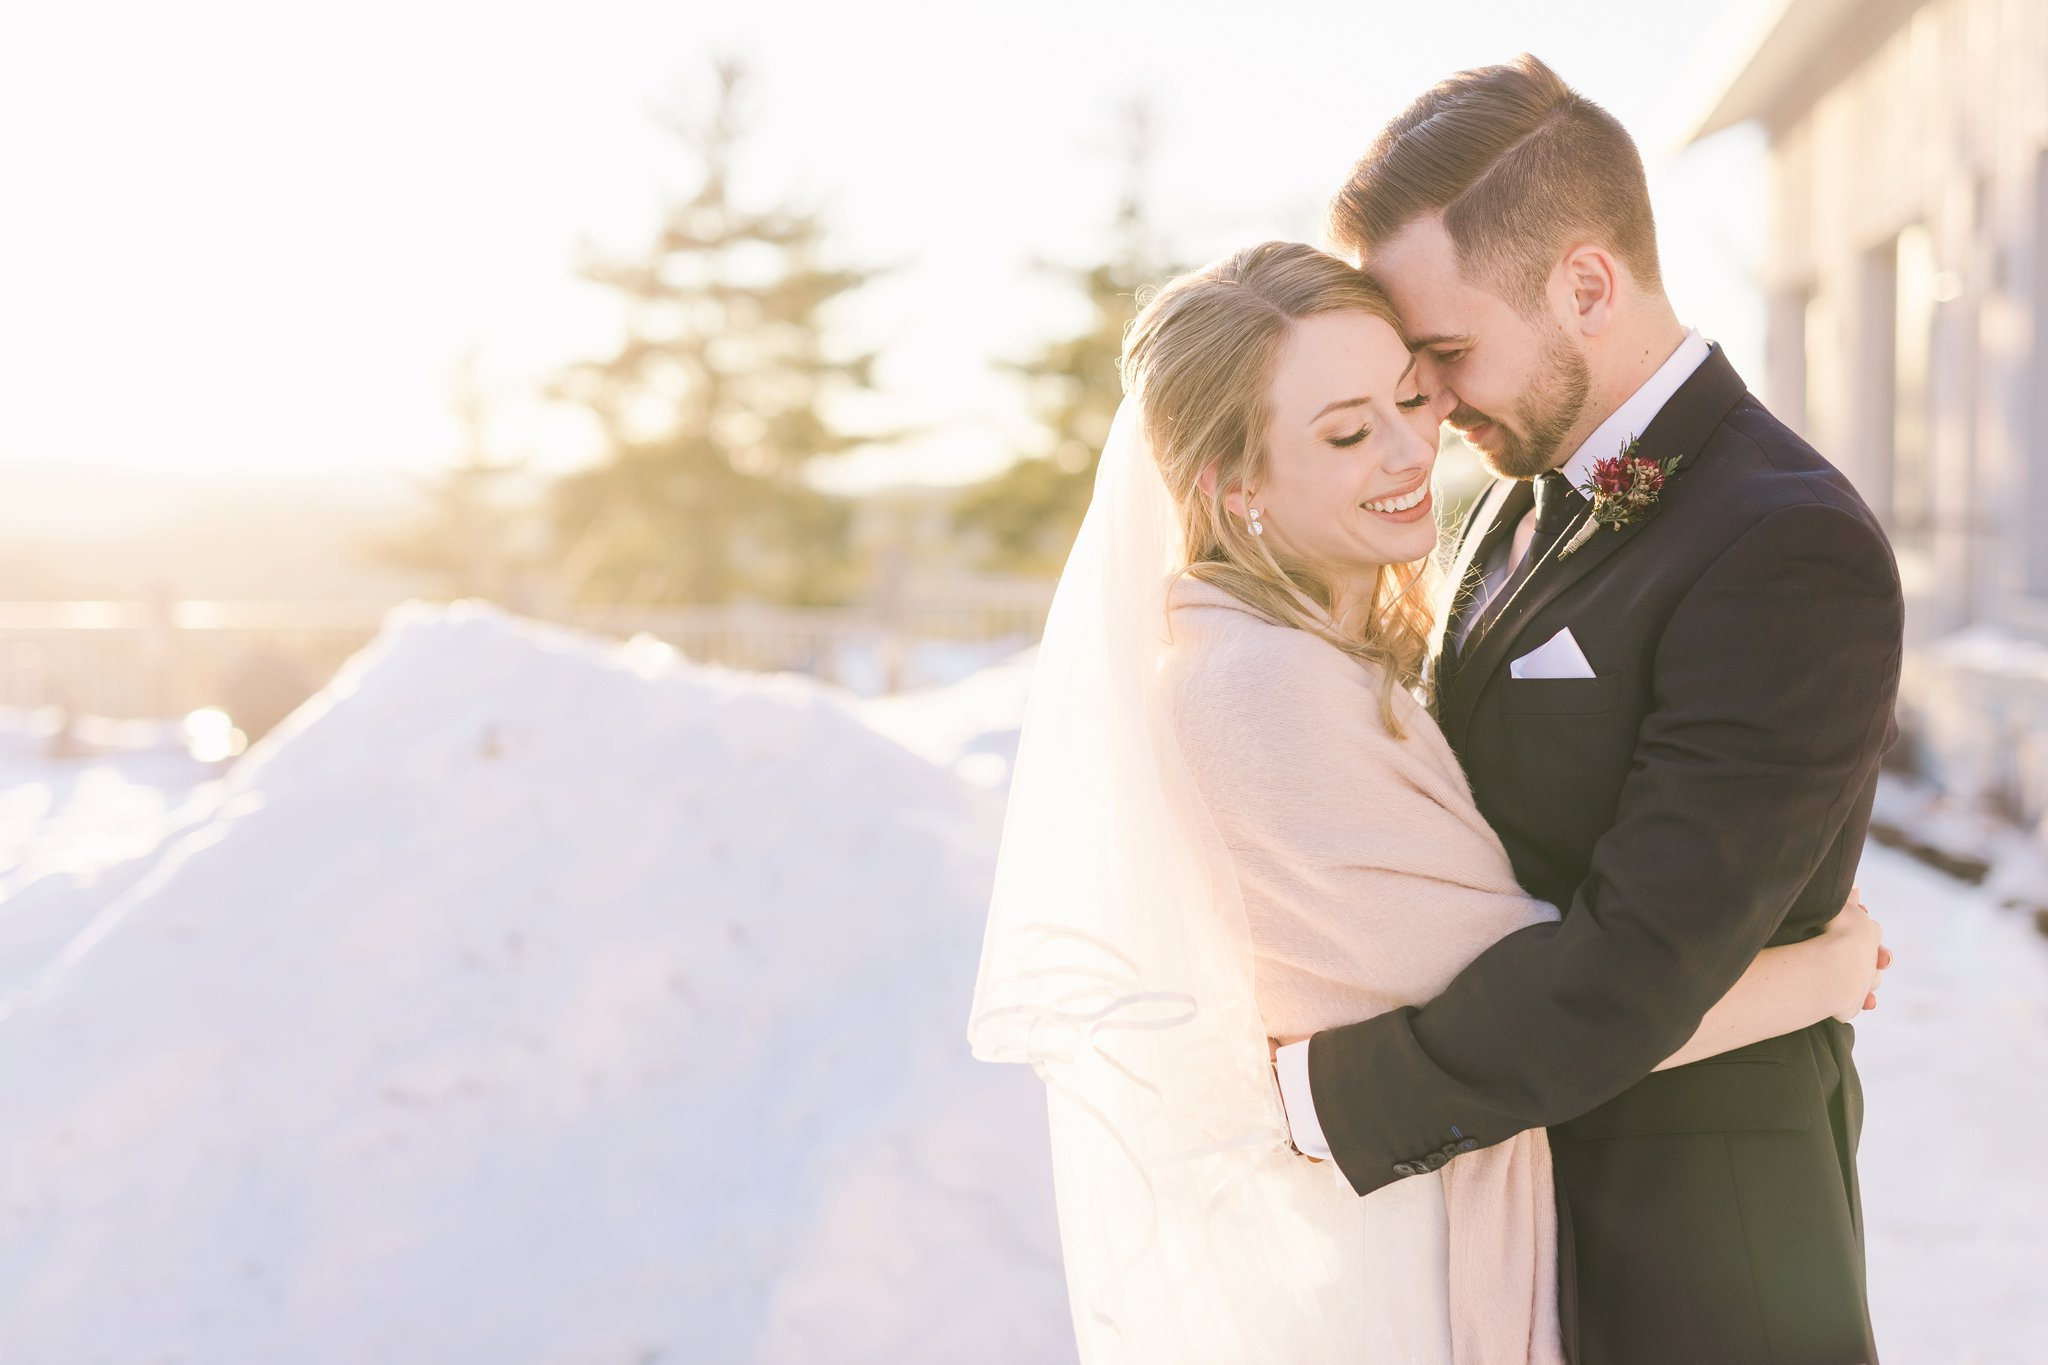 golden hour light at the Winter wedding at Le Belvedere